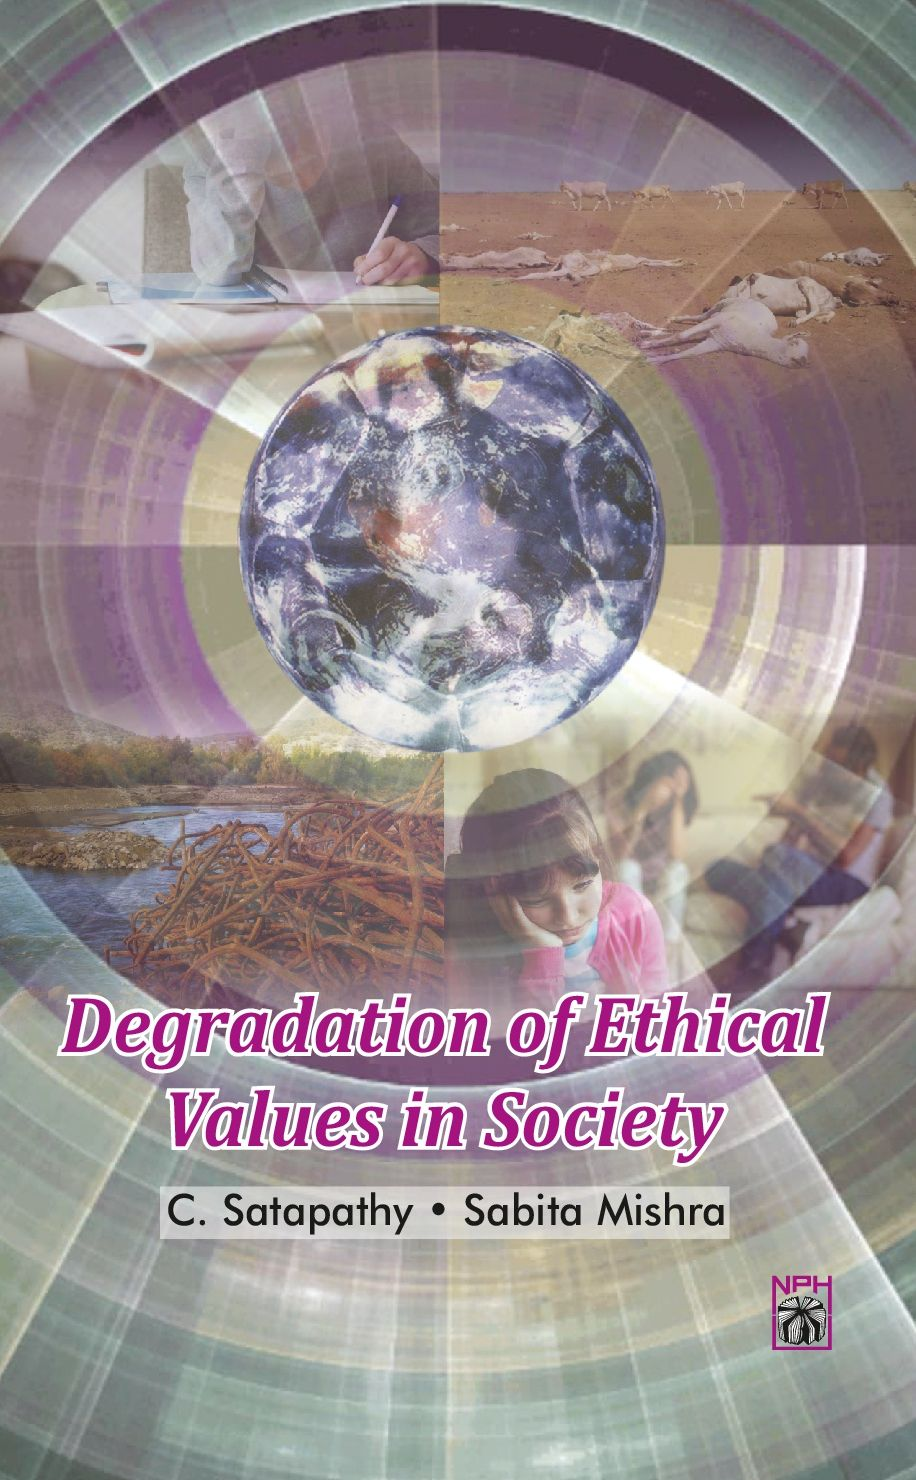 Degradation of Ethical Values in Society